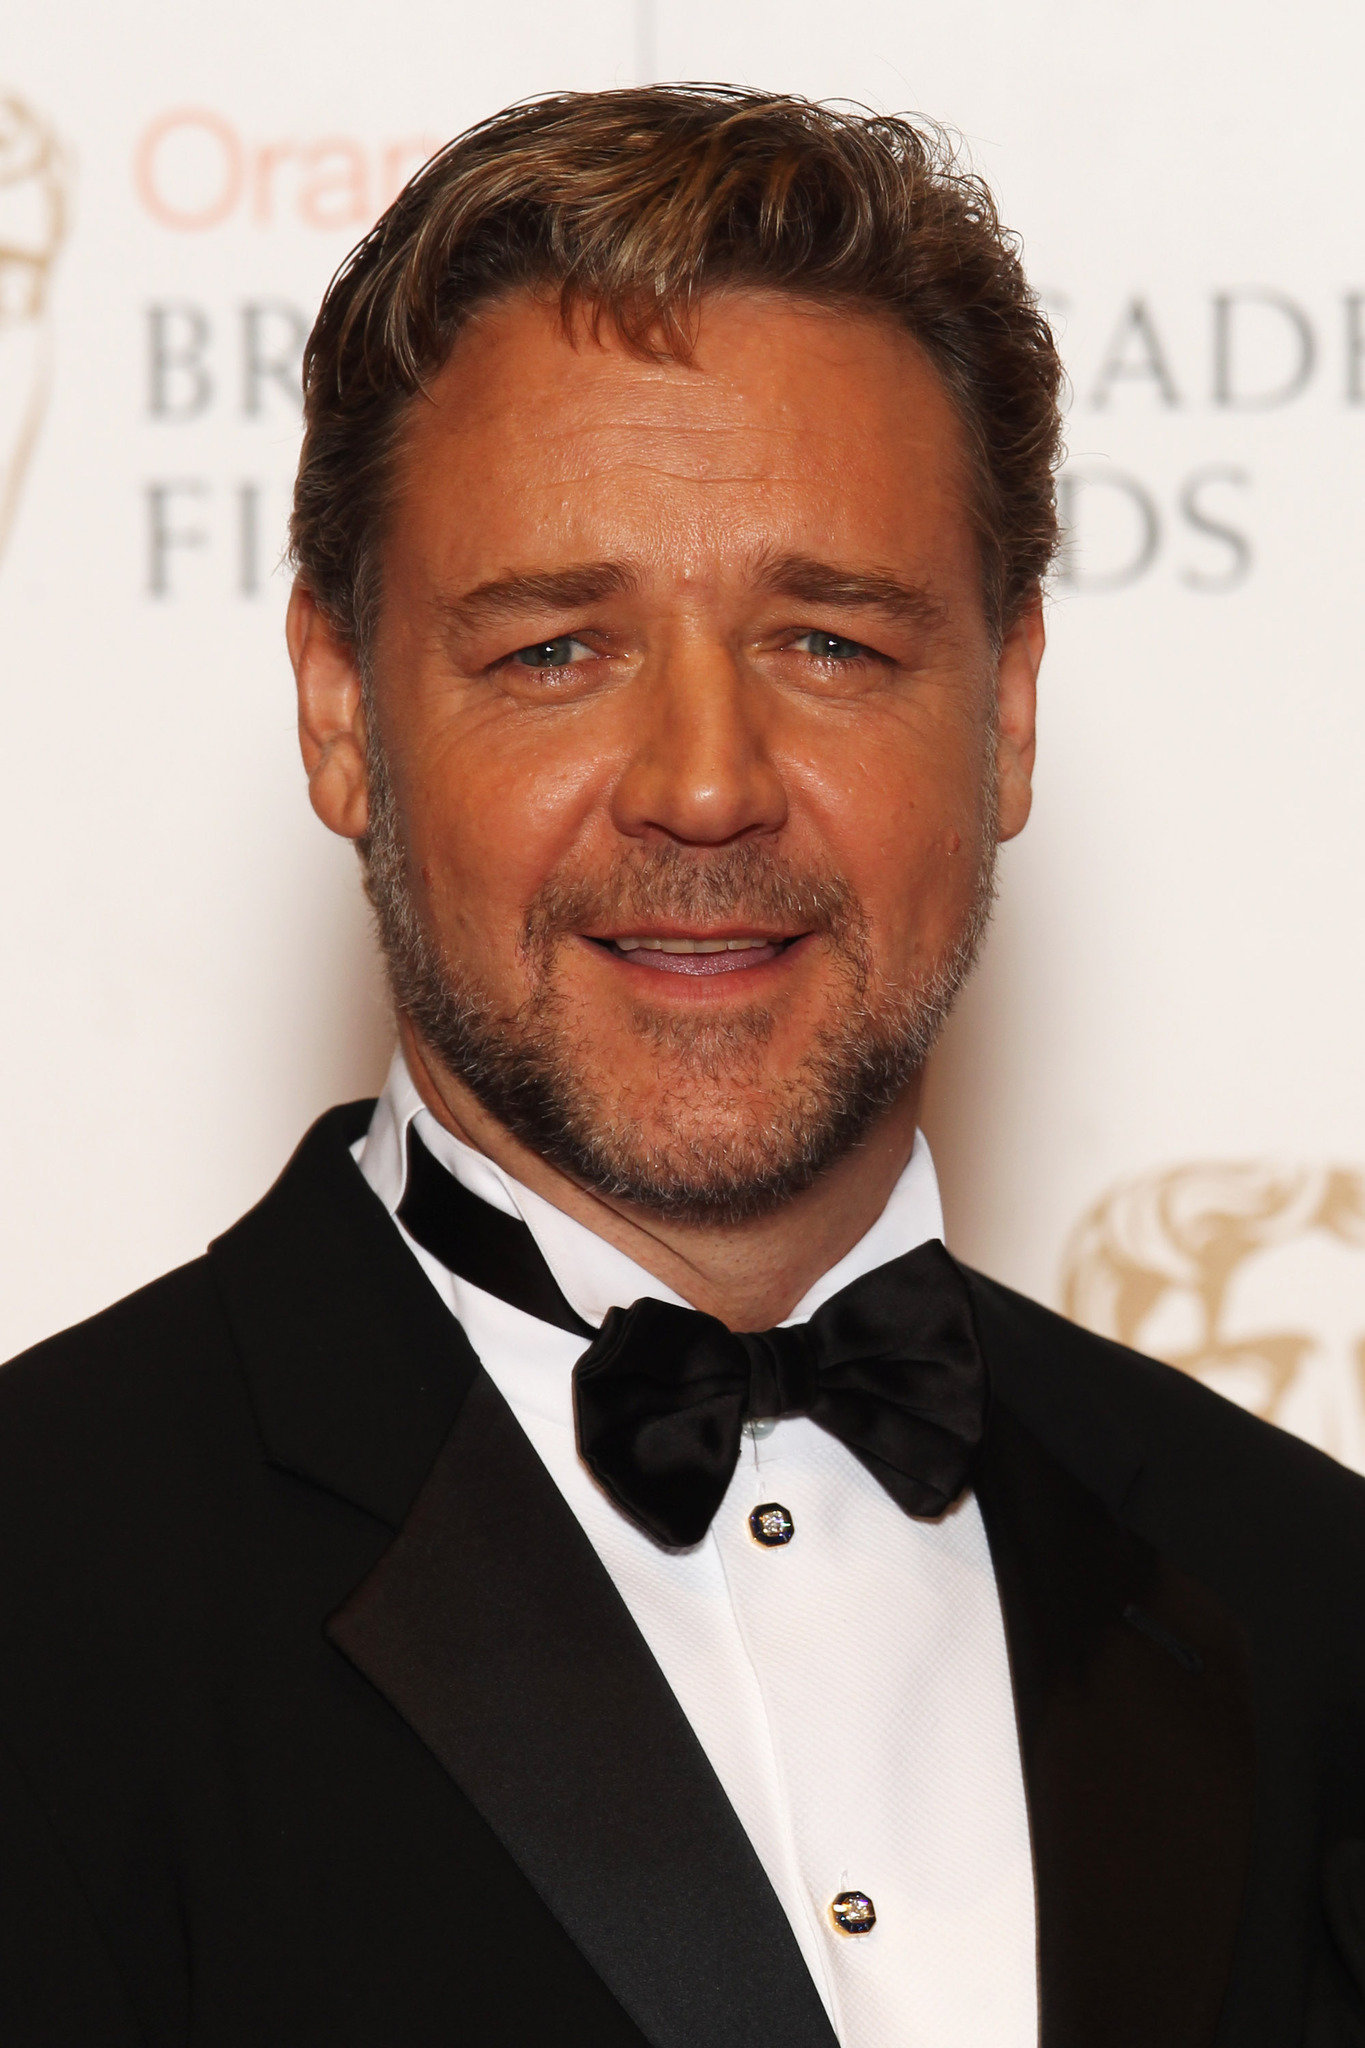 Russell Crowe #198937 Wallpapers High Quality | Download Free